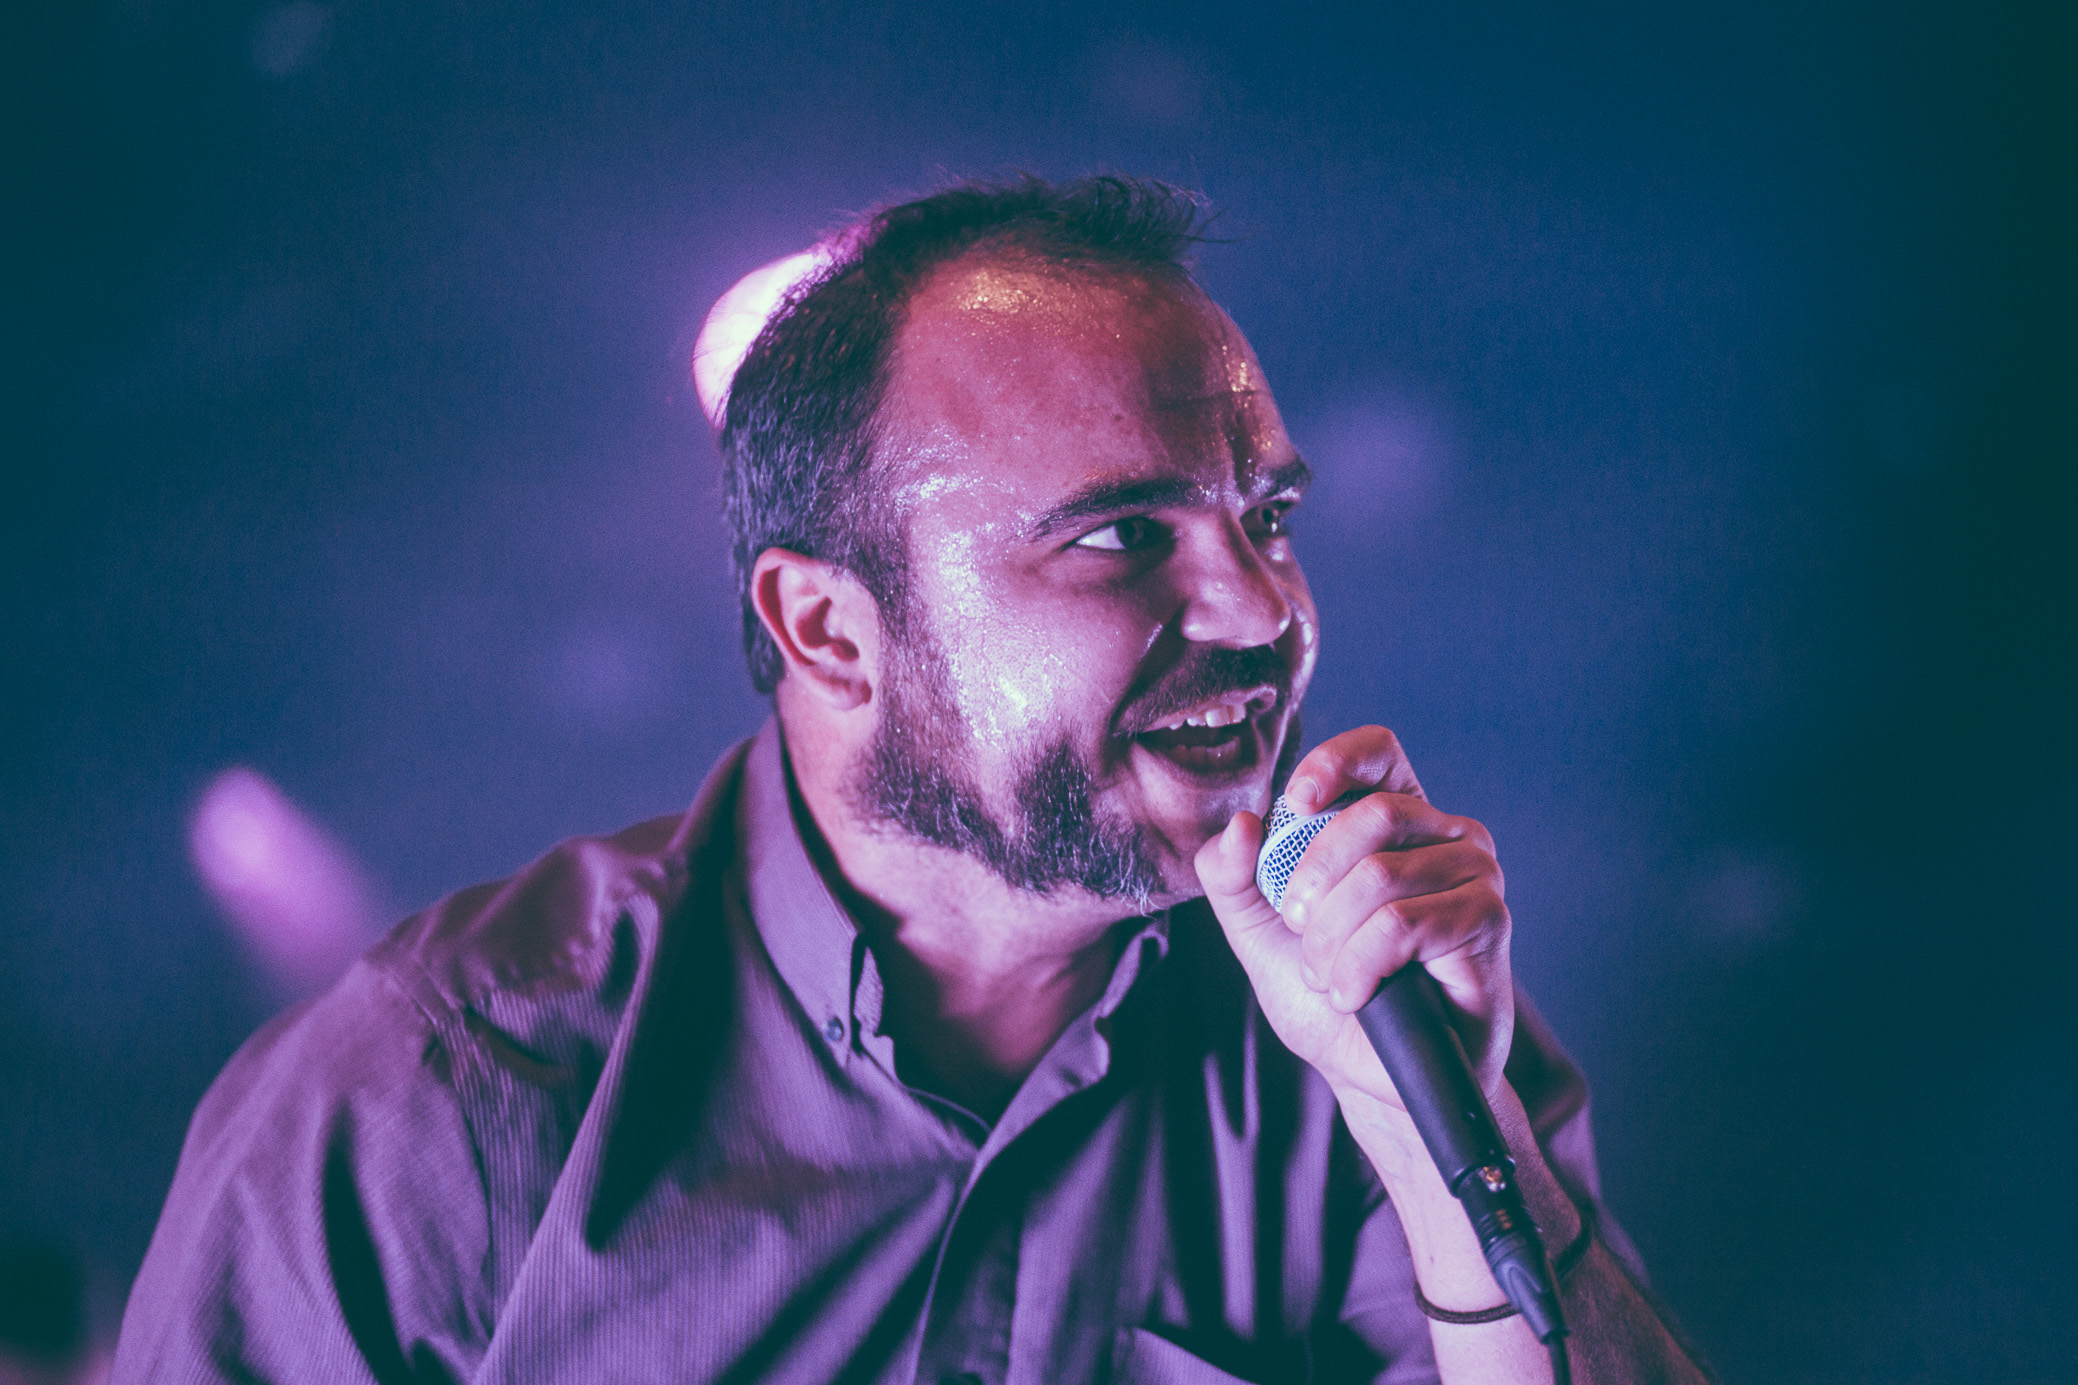 Samuel T. Herring of Future Islands performs in concert at Iron City in Birmingham, Alabama on September 10th, 2017. (Photo by David A. Smith/DSmithScenes)